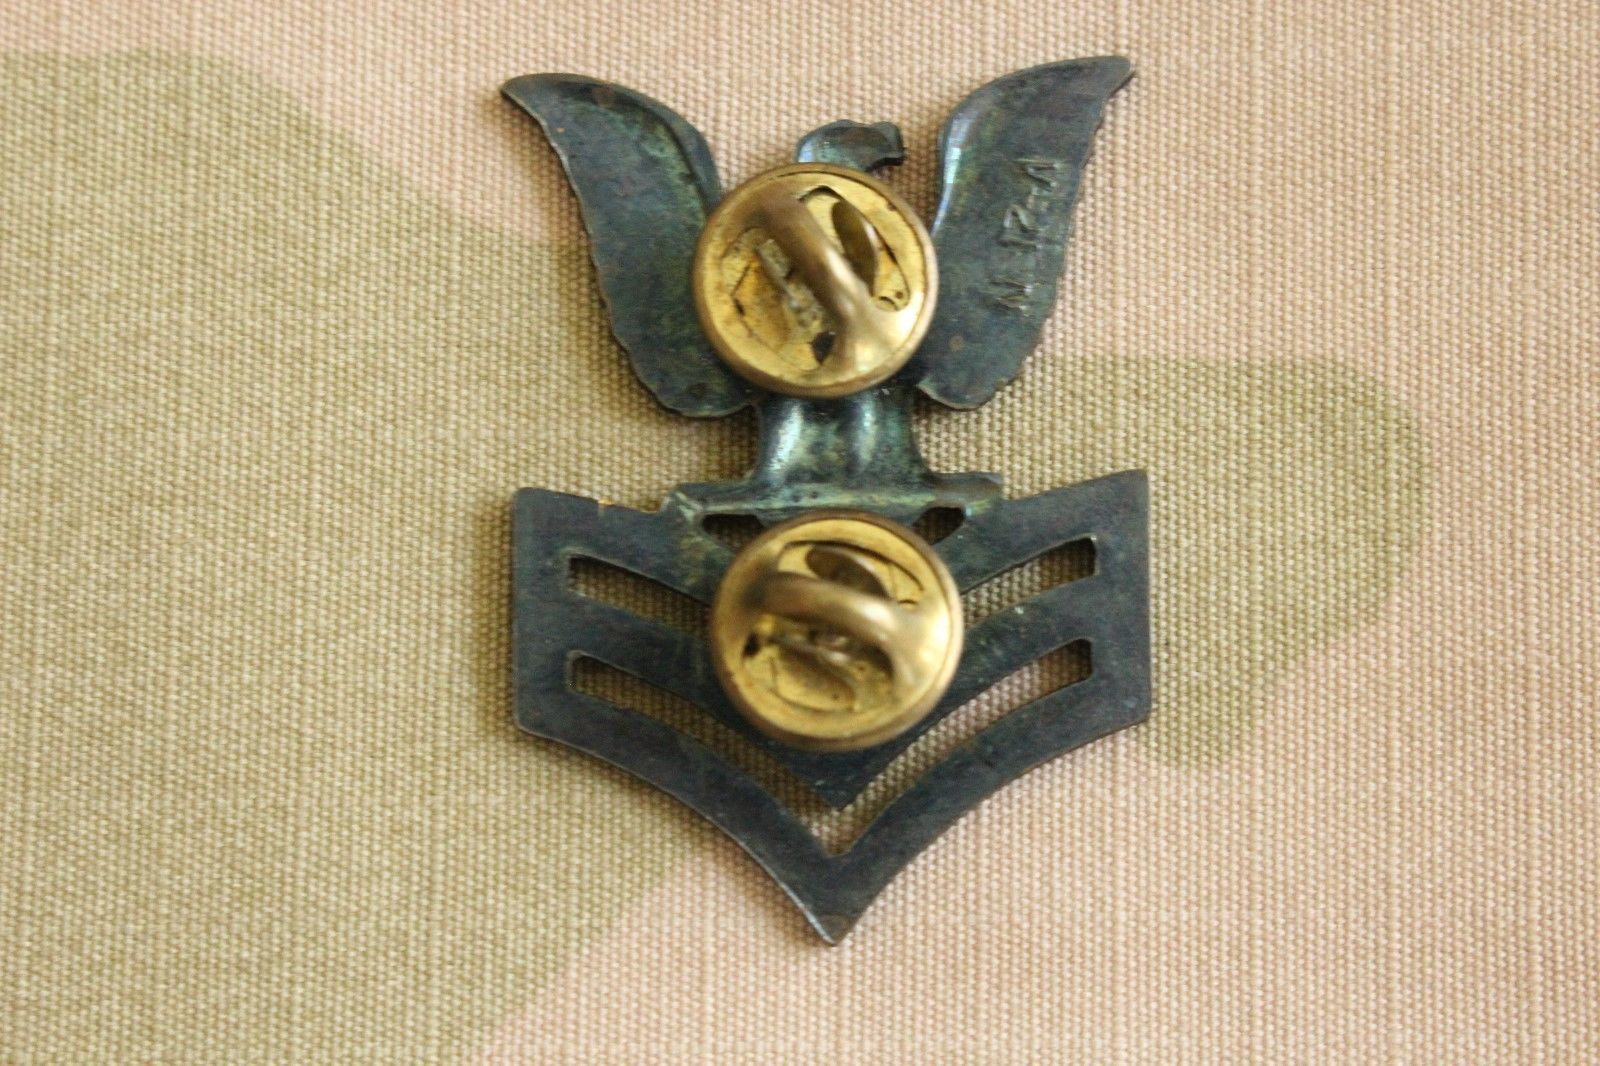 USN US NAVY ALL RATES E-6 PO1 PETTY OFFICER 1ST CL. 8 POINT COVER BADGE DEVICE B